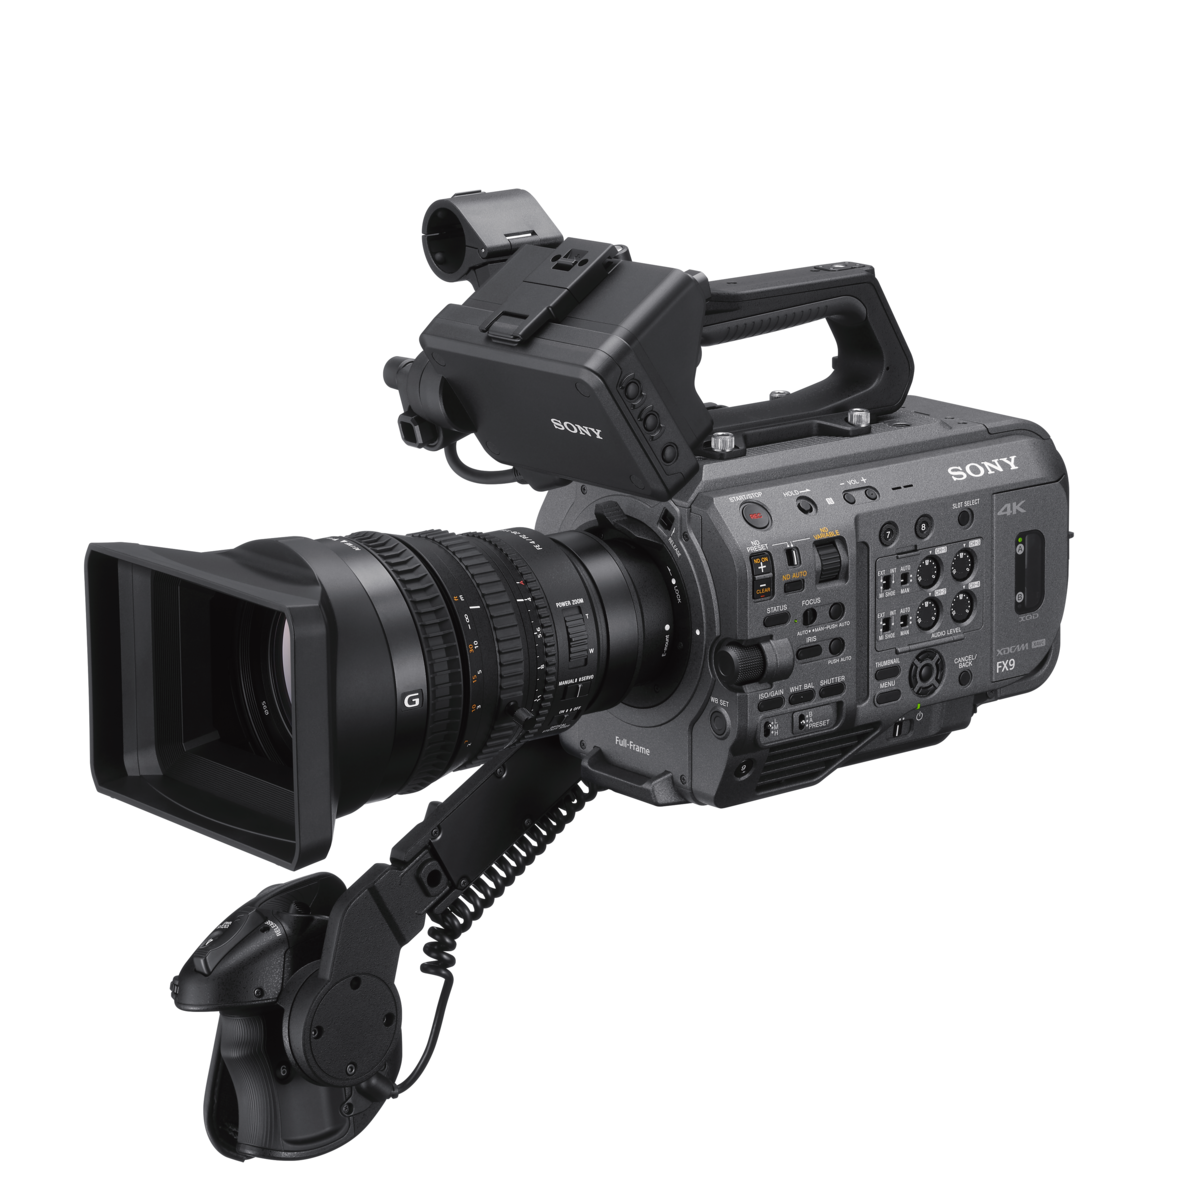 Sony launches flagship FX9 camcorder with newly-developed Full-Frame[1]sensor, Fast Hybrid Auto Focus system and enhanced mobility features